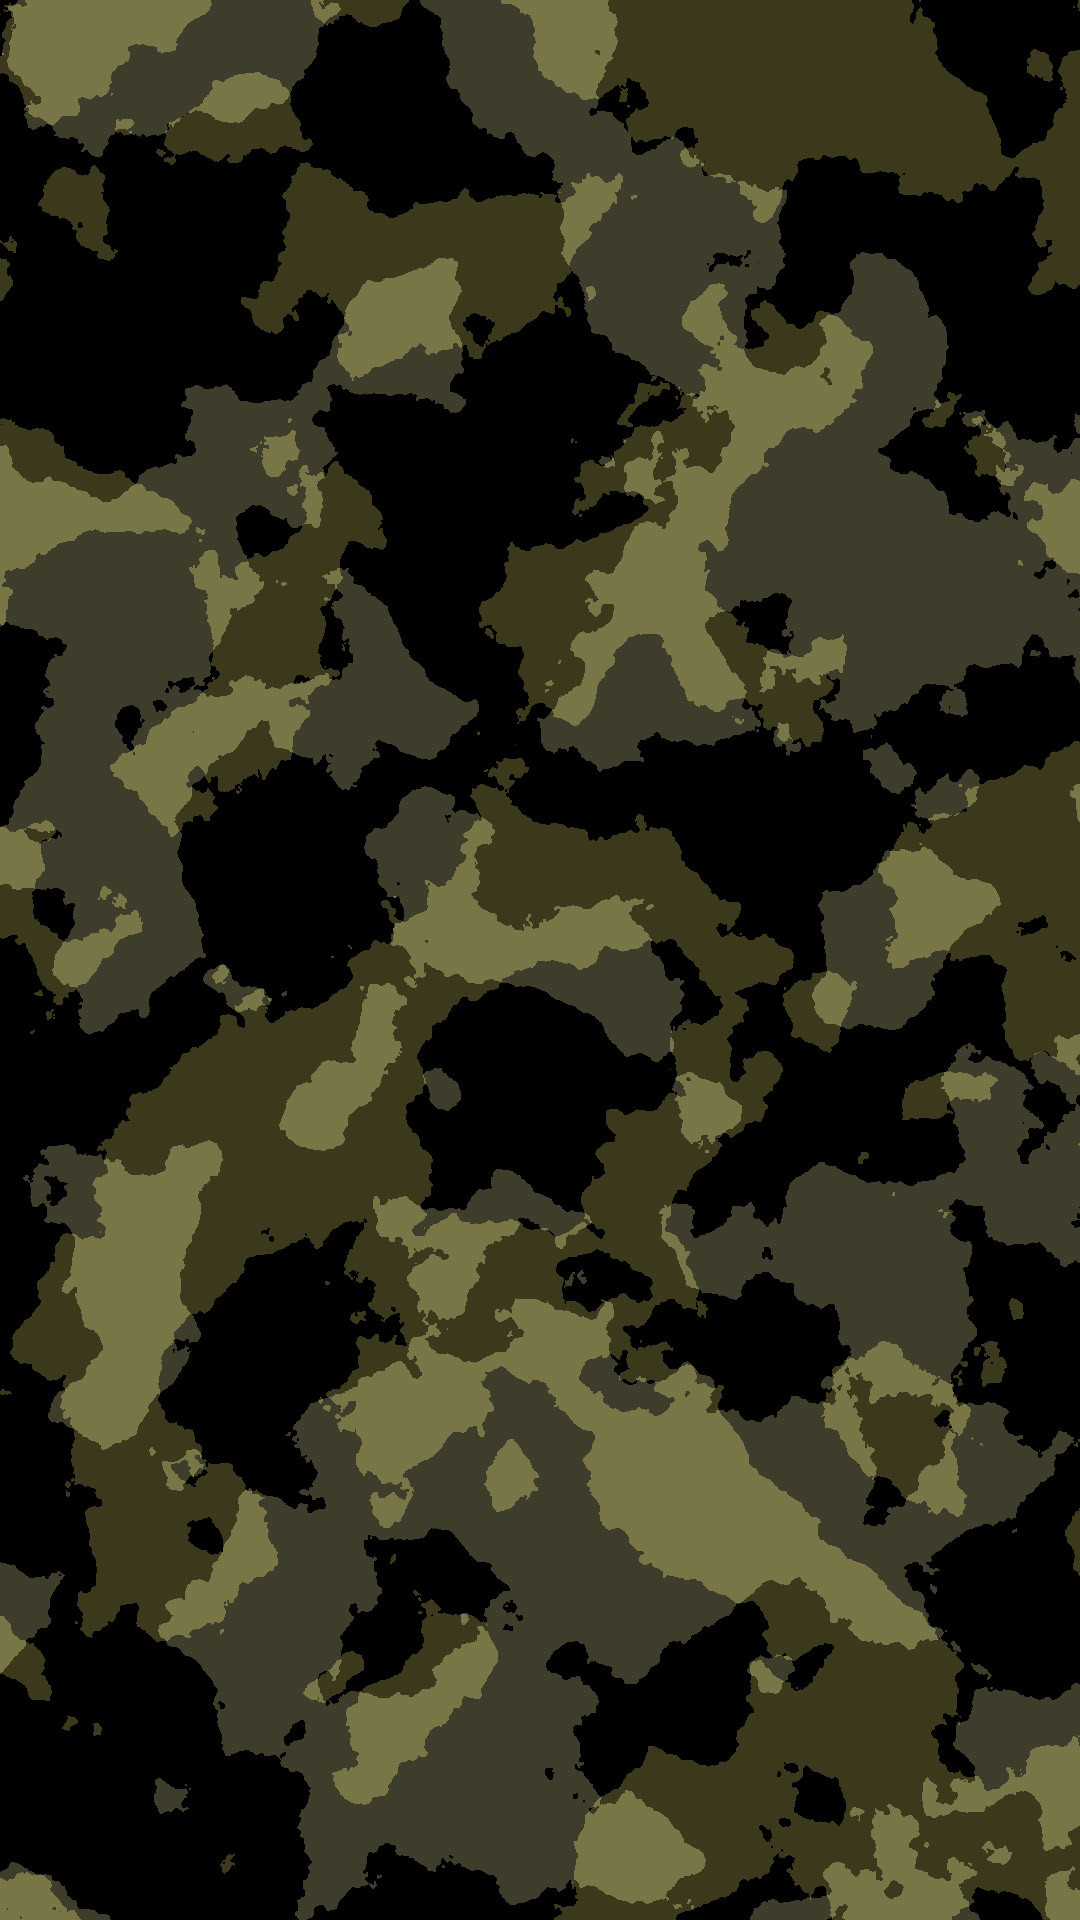 Bape Camo Wallpaper Iphone X Camo Iphone Wallpaper Hd 60 Images